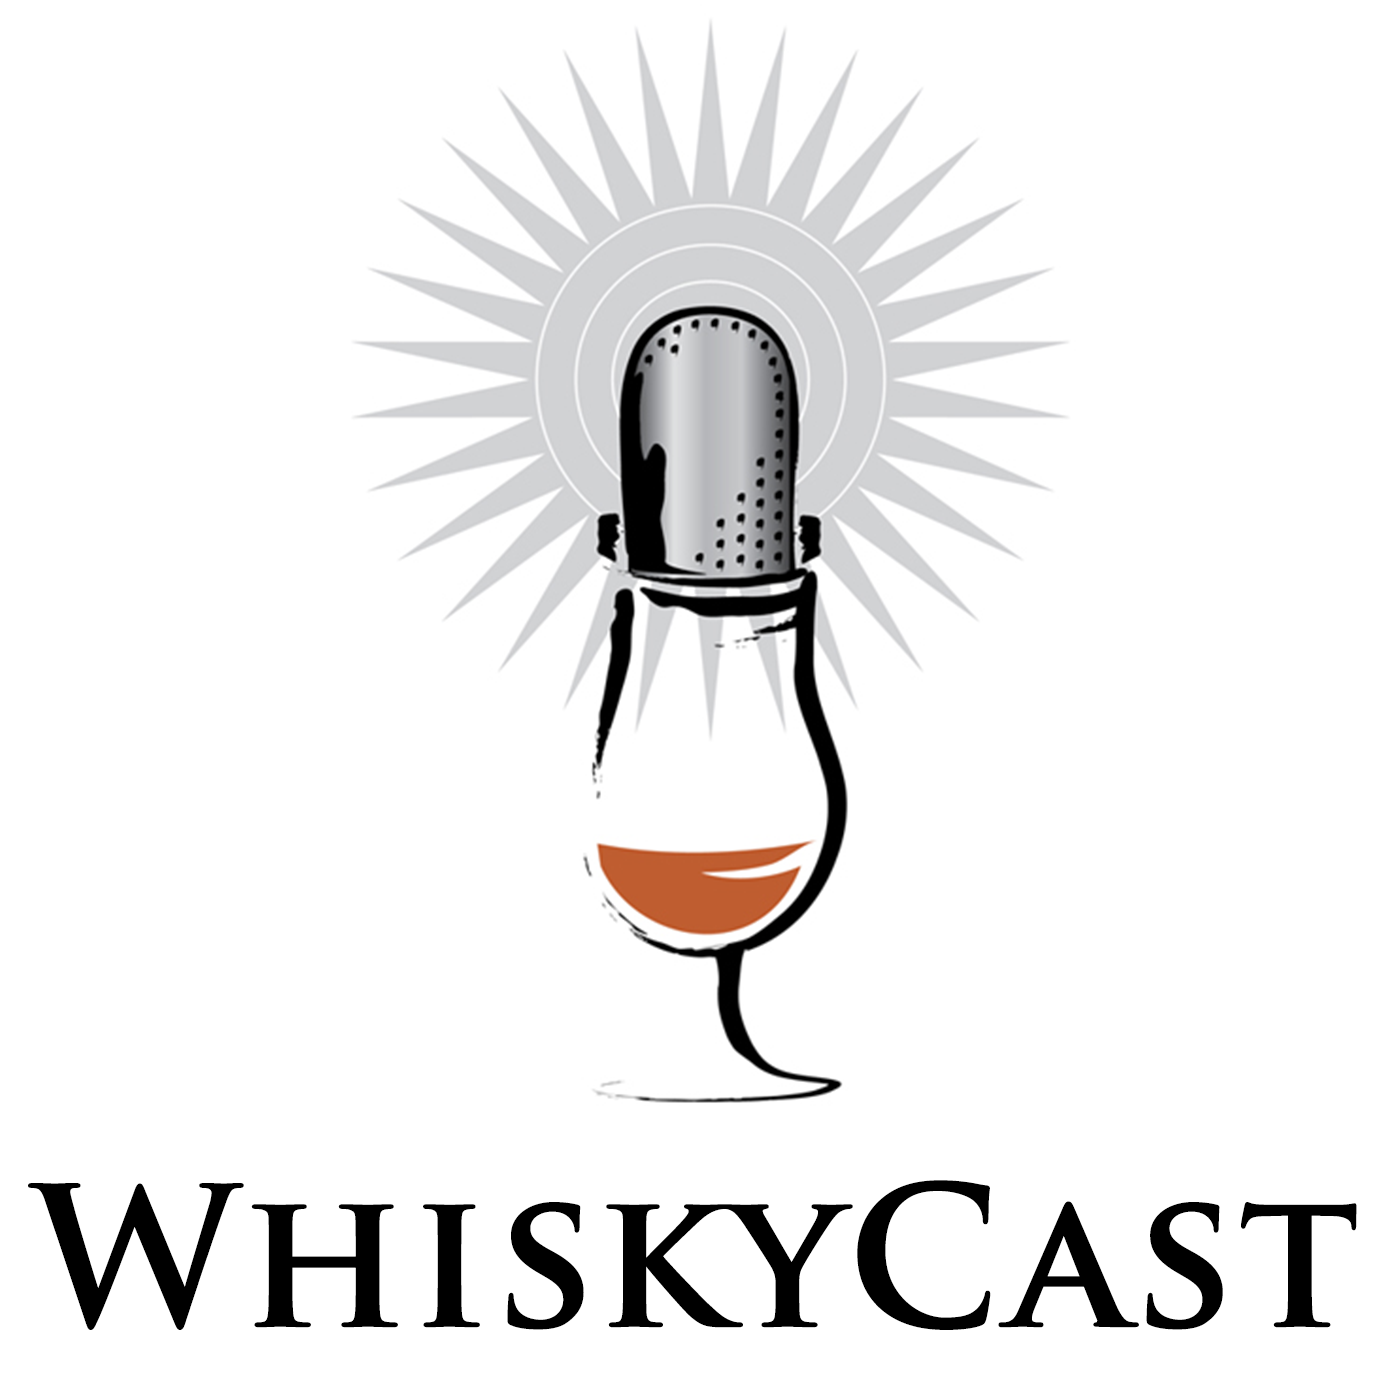 WhiskyCast Episode 437: August 12, 2013